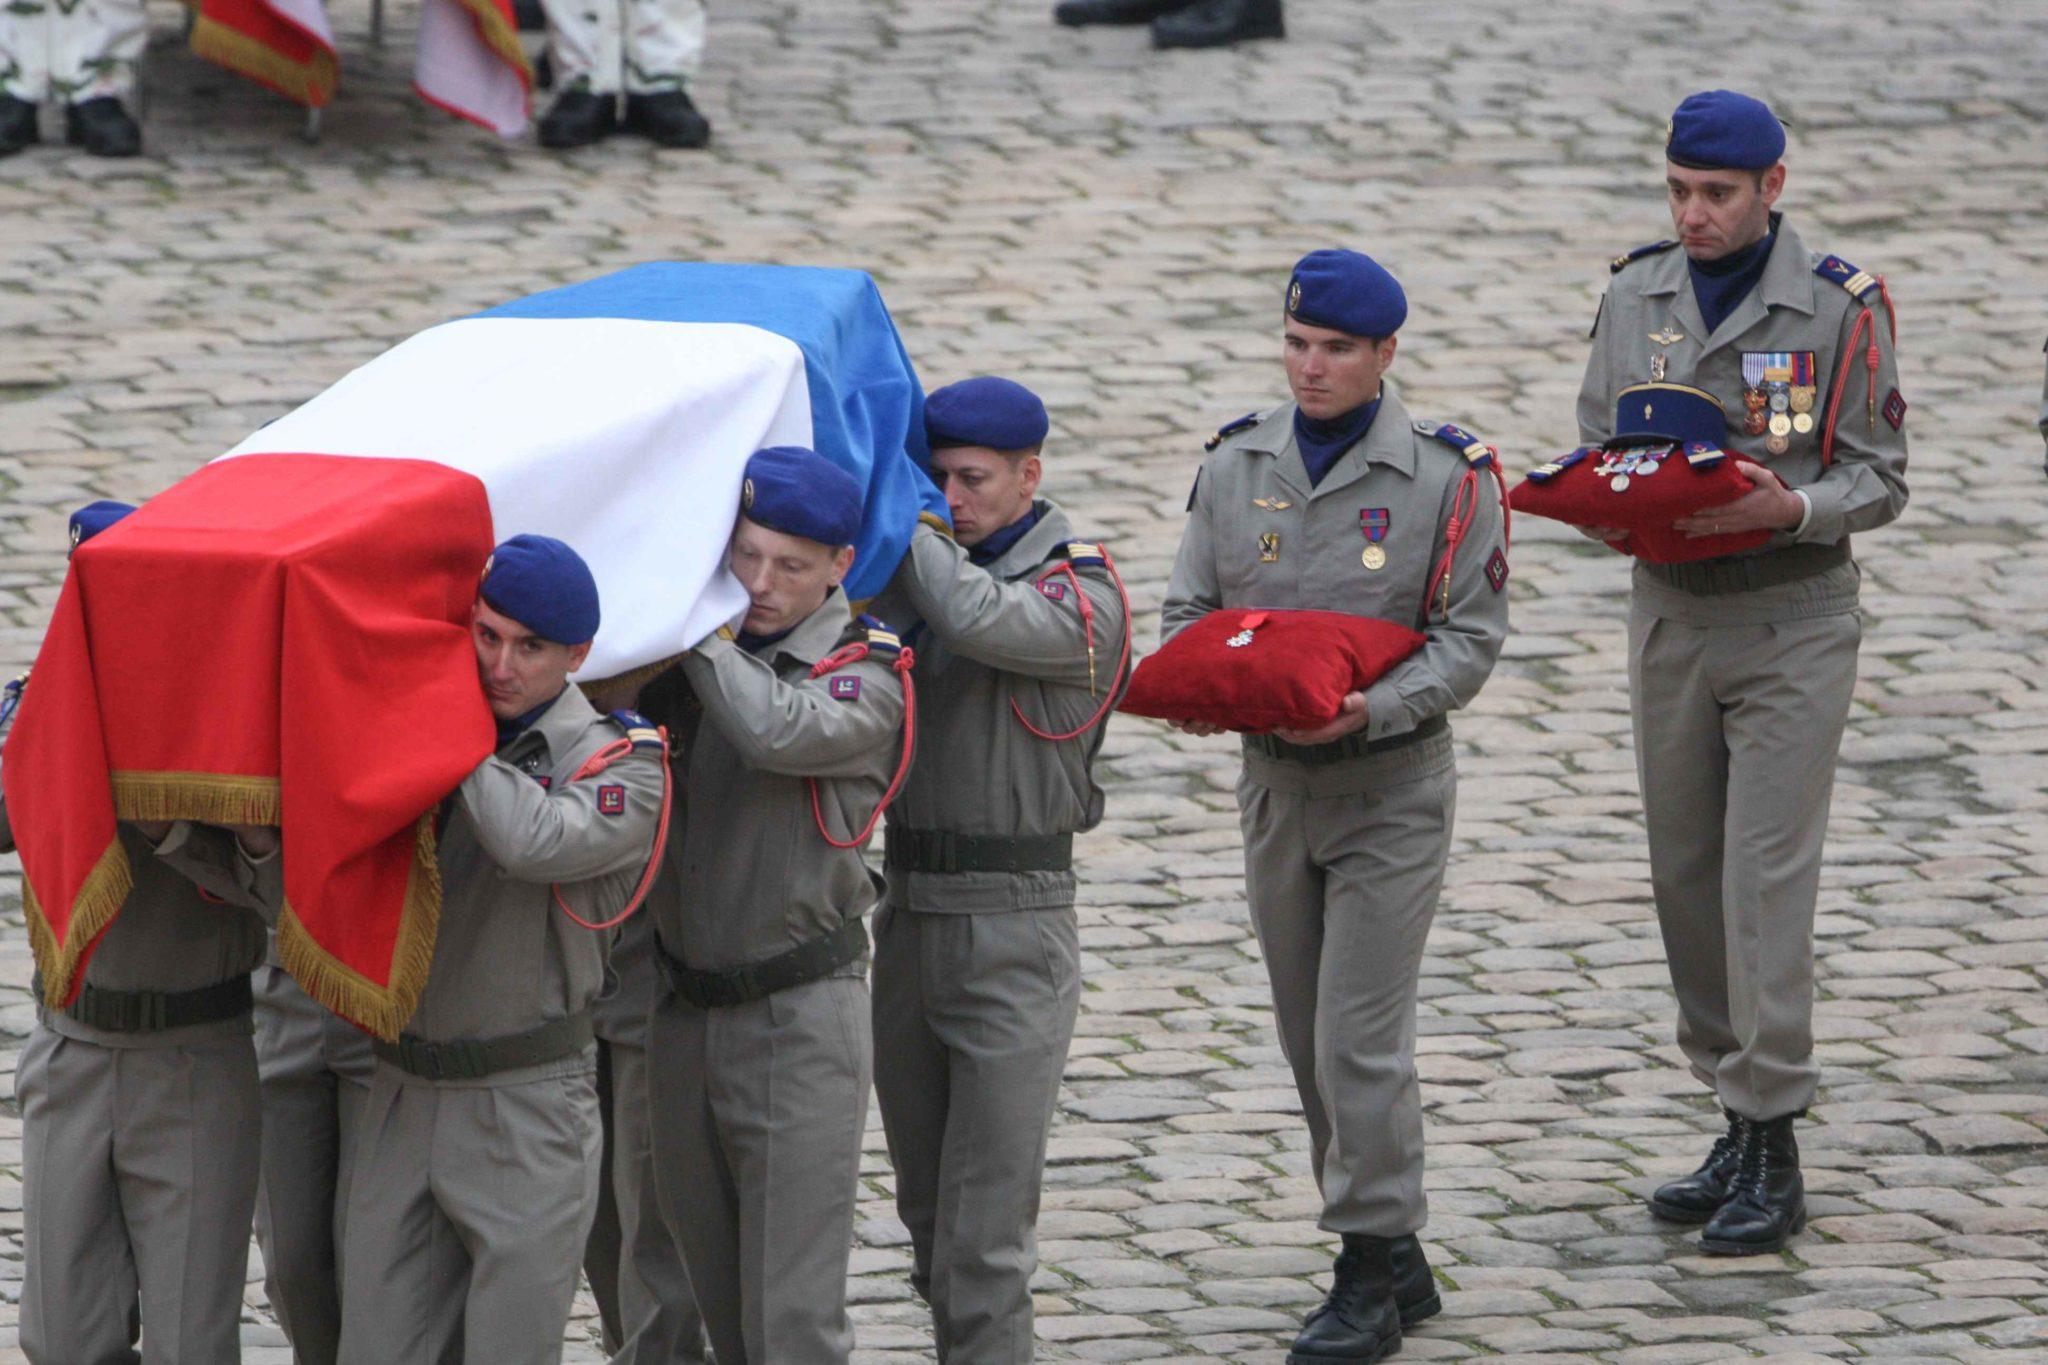 Soldiers carry the coffin of the 13 French soldiers who died in a helicopter collision in Mali during the tribute ceremony at the Invalides monument in Paris on December 2, 2019. In its biggest military funeral in decades, France is honoring 13 soldiers ki